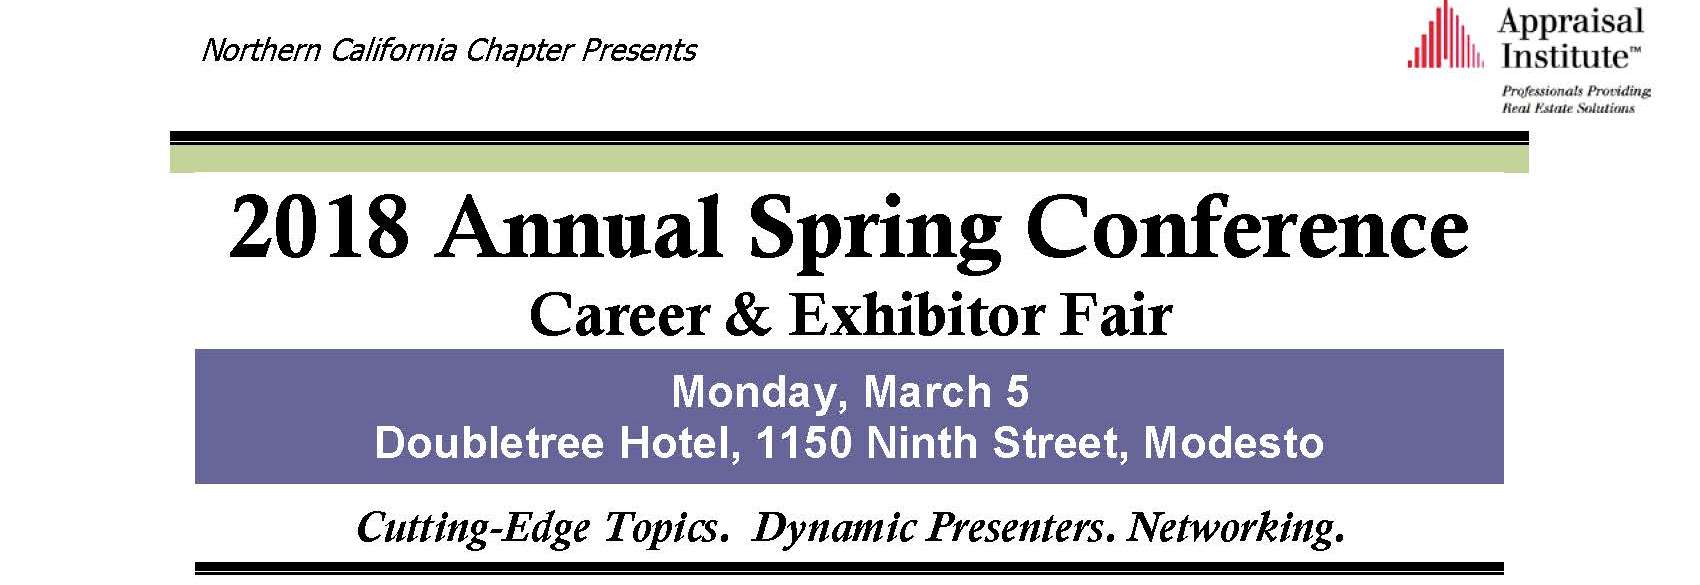 2018 Annual Spring Conference